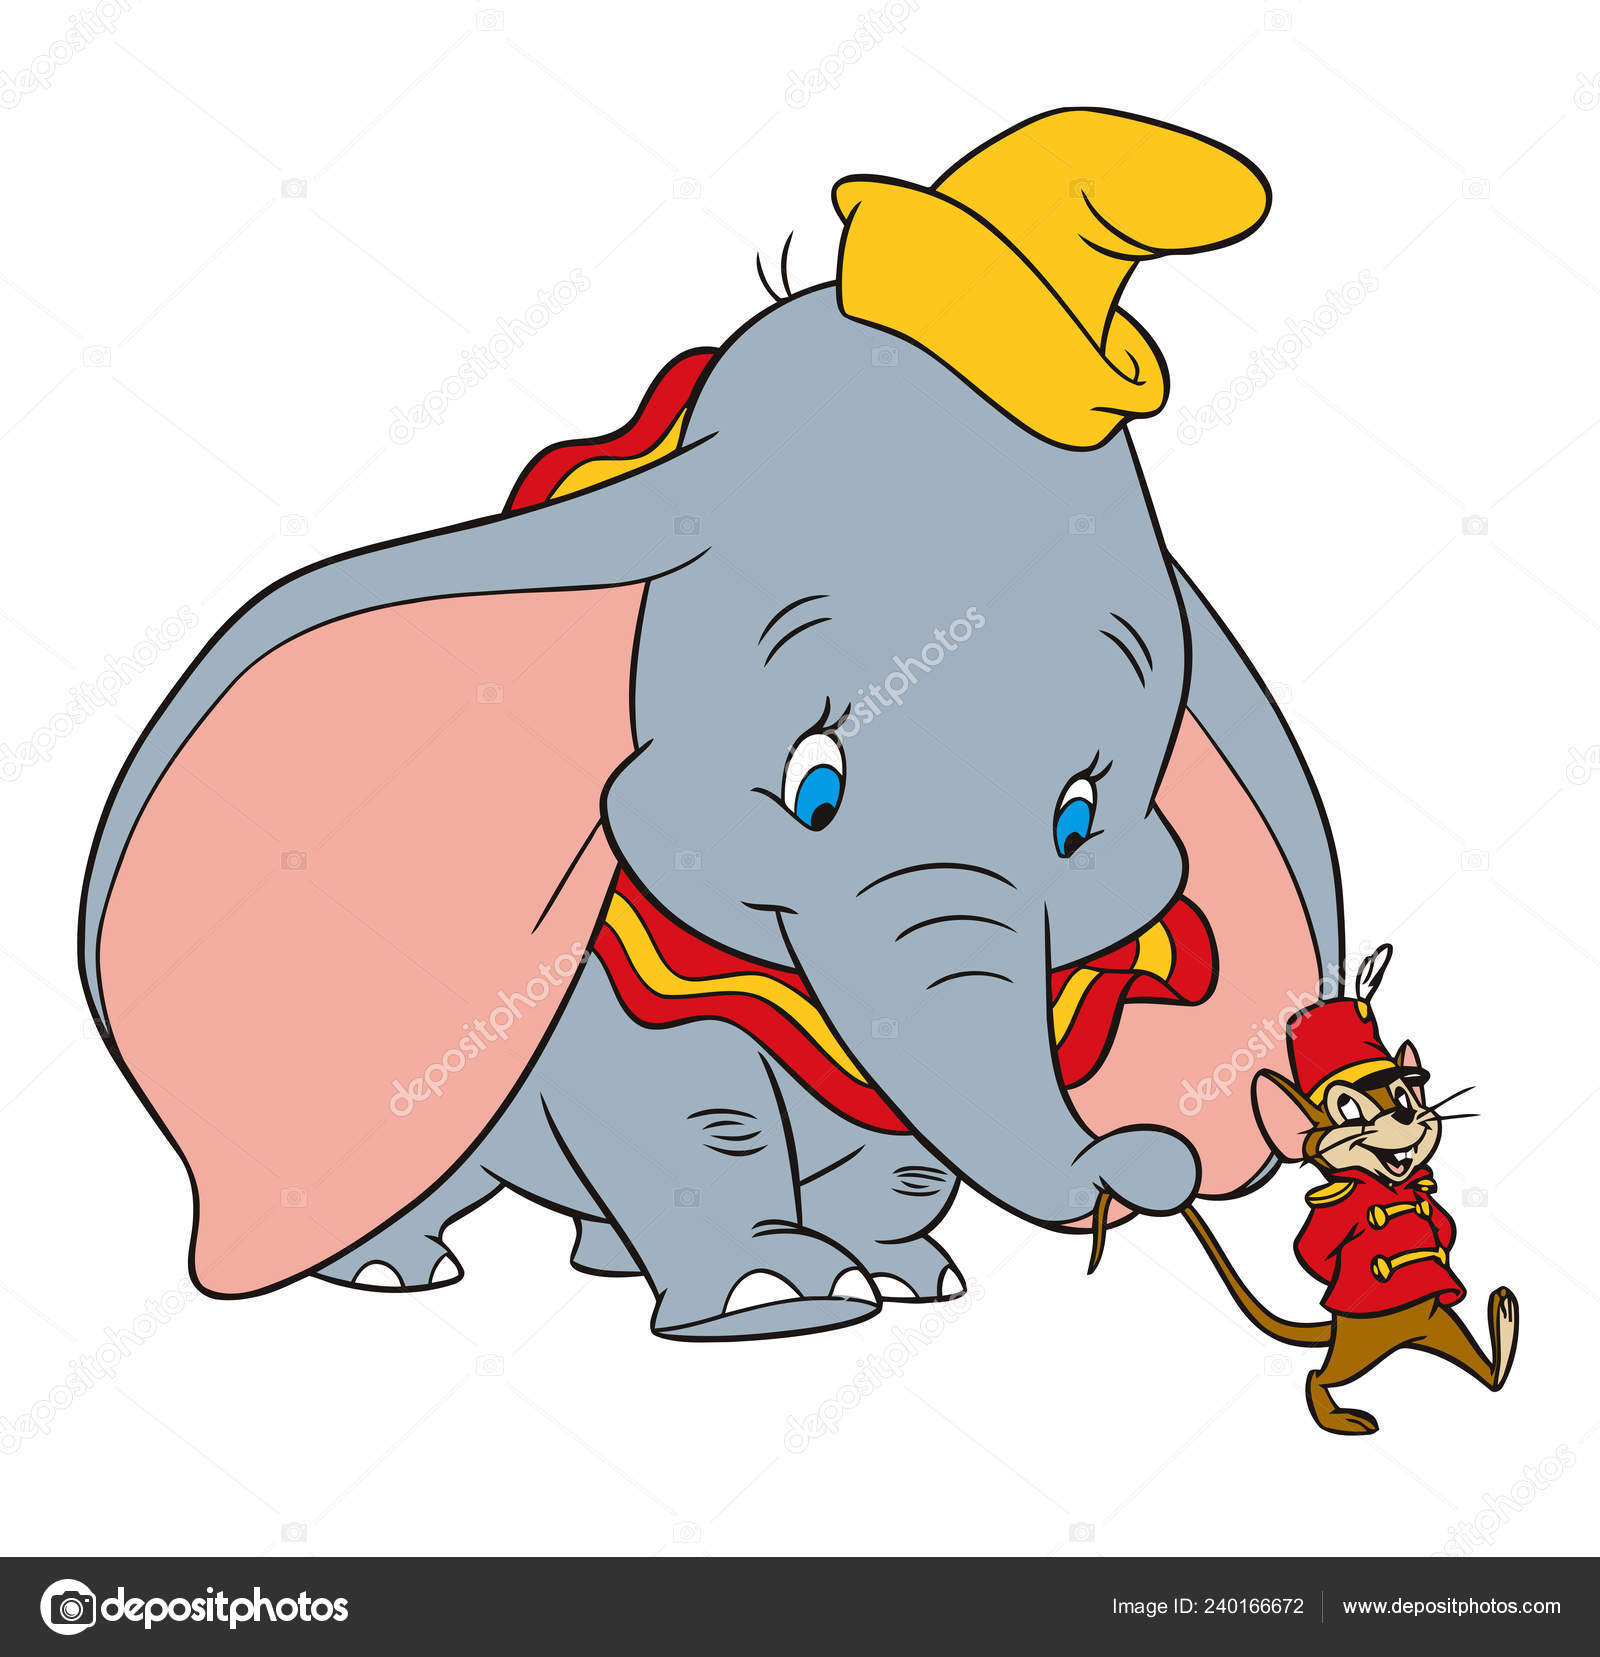 Pmages: Dumbo The Elephant | Dumbo Flying Elephant Timothy intérieur Dessin Dumbo